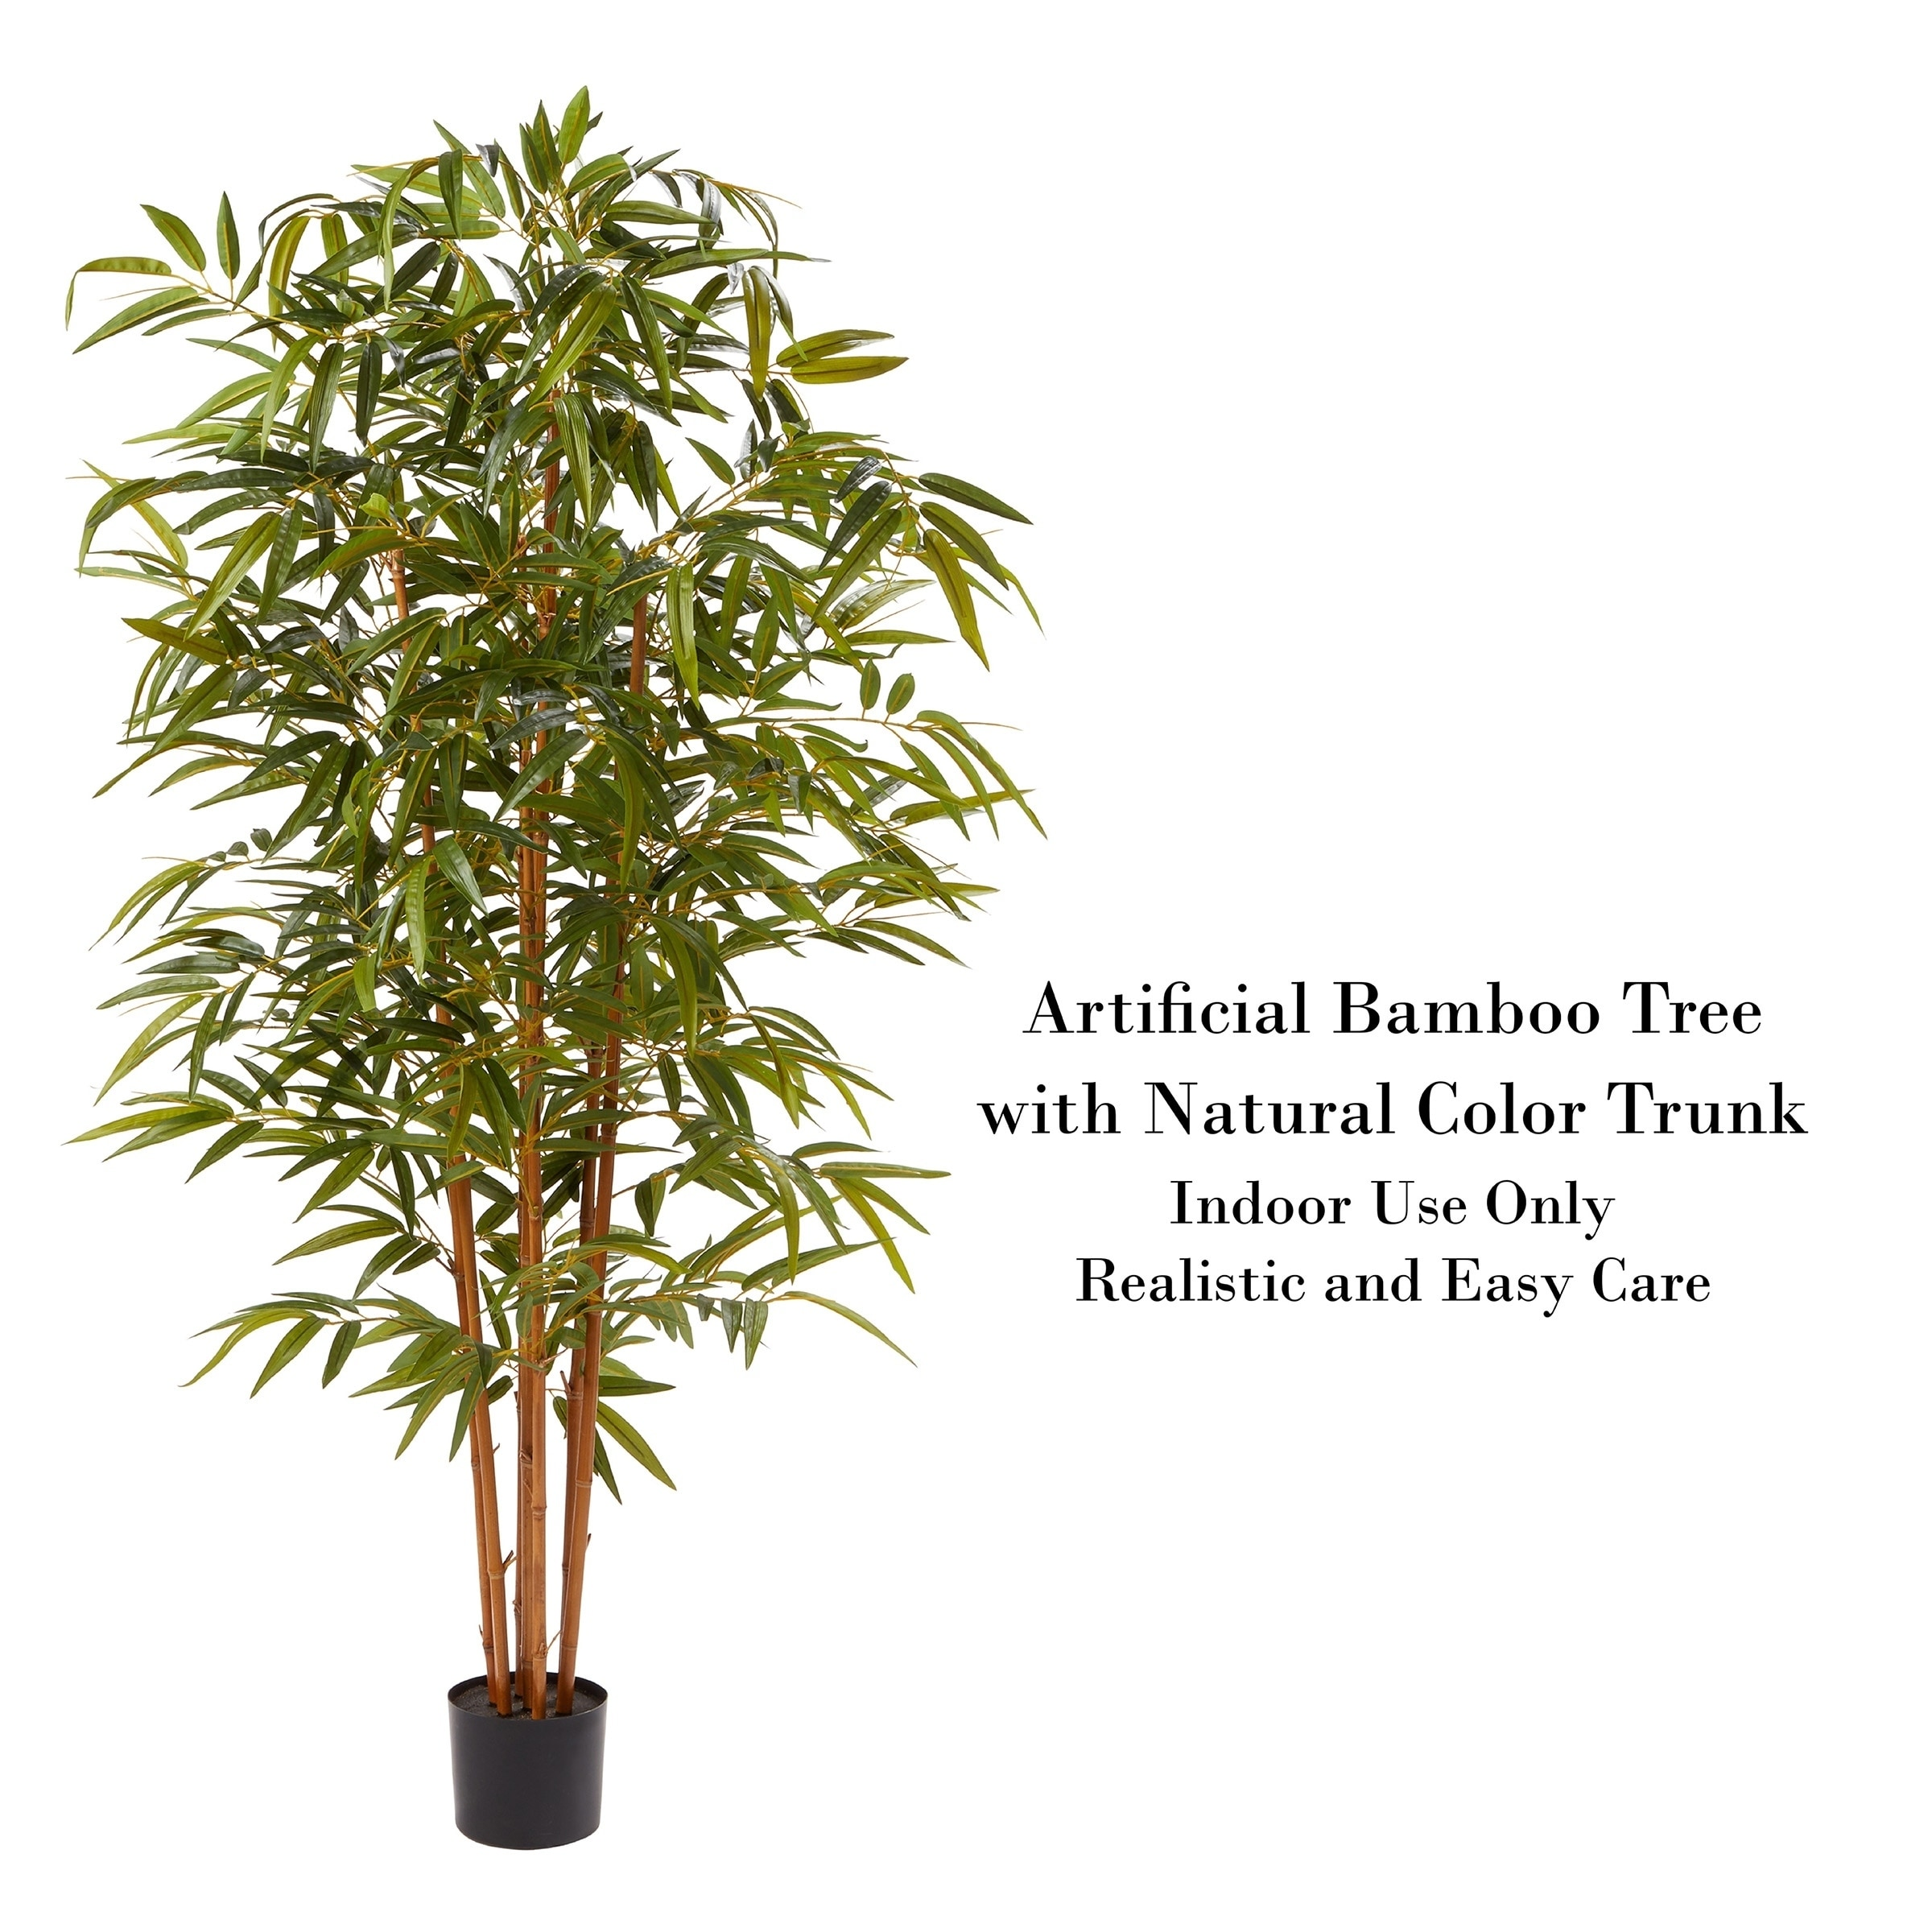 Shop Pure Garden Faux Bamboo 6 Foot Tall Potted Indoor Floor Plant